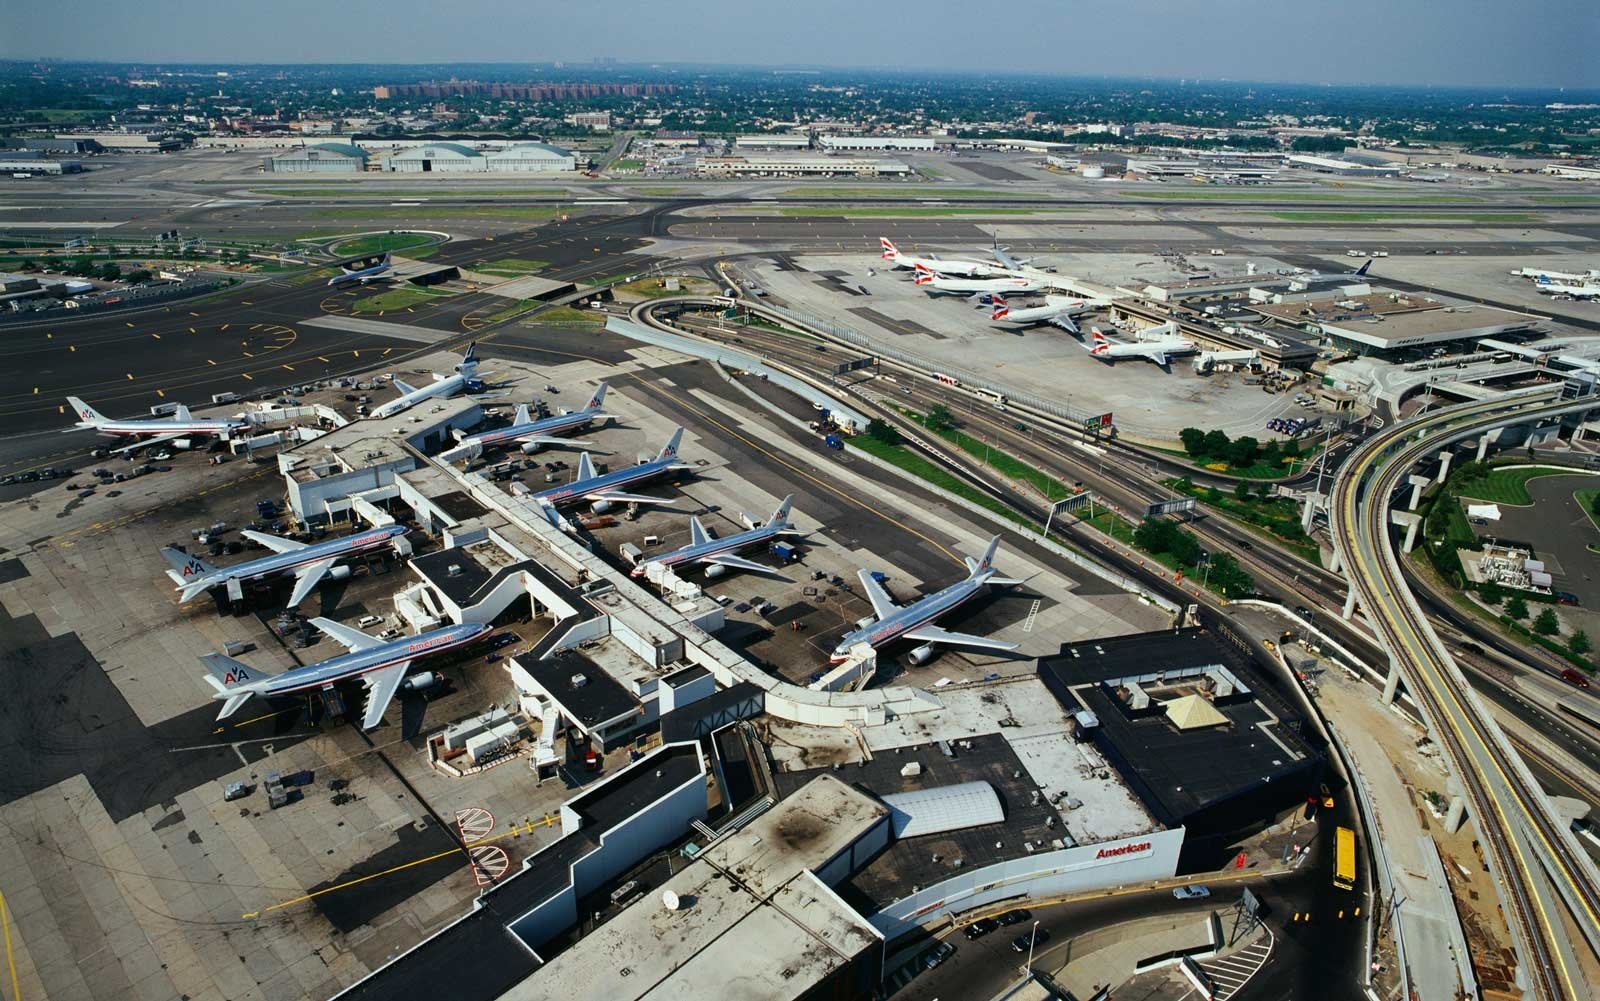 View of John F. Kennedy Airport